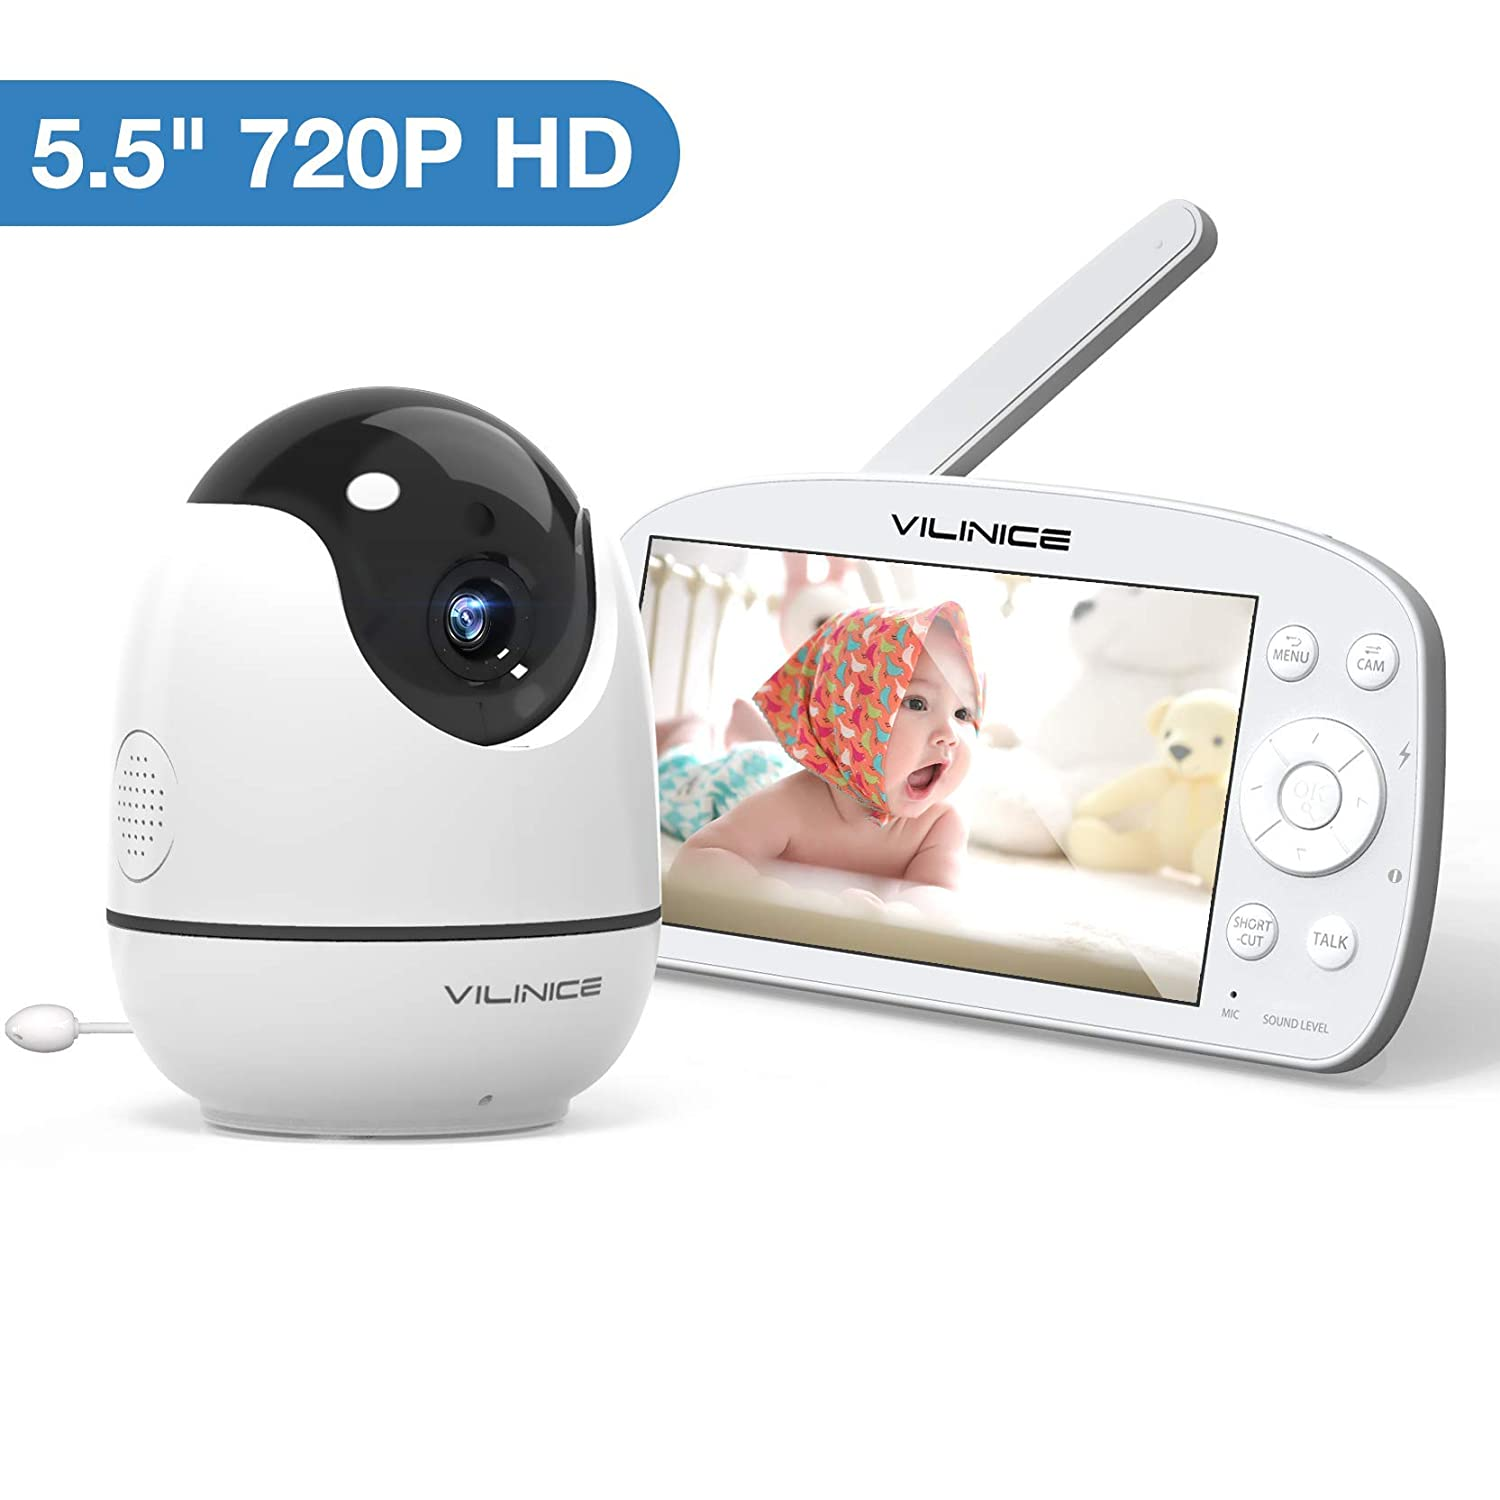 """Baby Monitor, VILINICE 720P HD Video Baby Monitor Large 5.5"""" Display with Camera and Audio Monitor, Night Vision, Two-Way Audio, Temperature Baby Monitor, VOX Voice and Lullabies"""